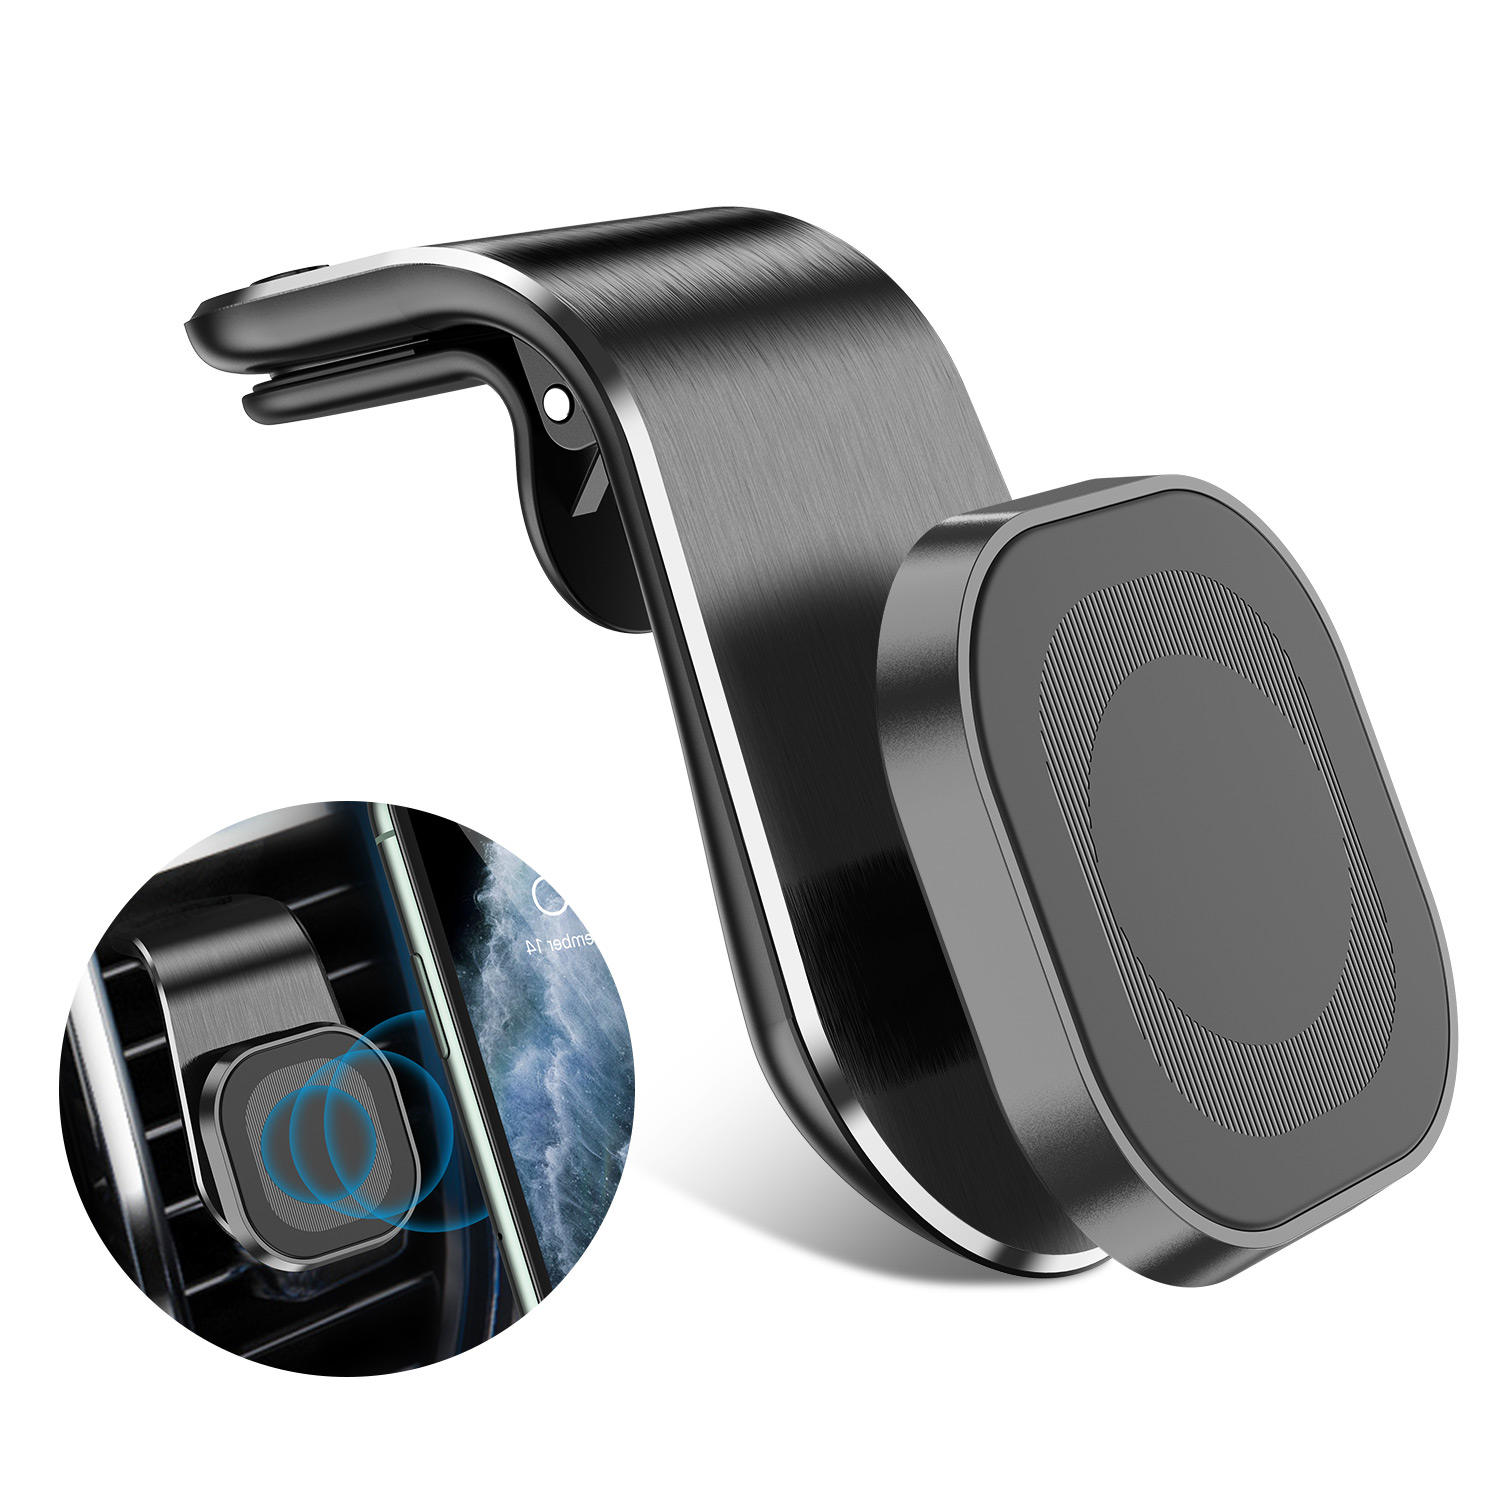 Strong Magnetic Car Phone Holder 360 Degree Rotatable Car Air Vent Mount Holder Applicable For Most Smart Phone 3.5-7 Inch